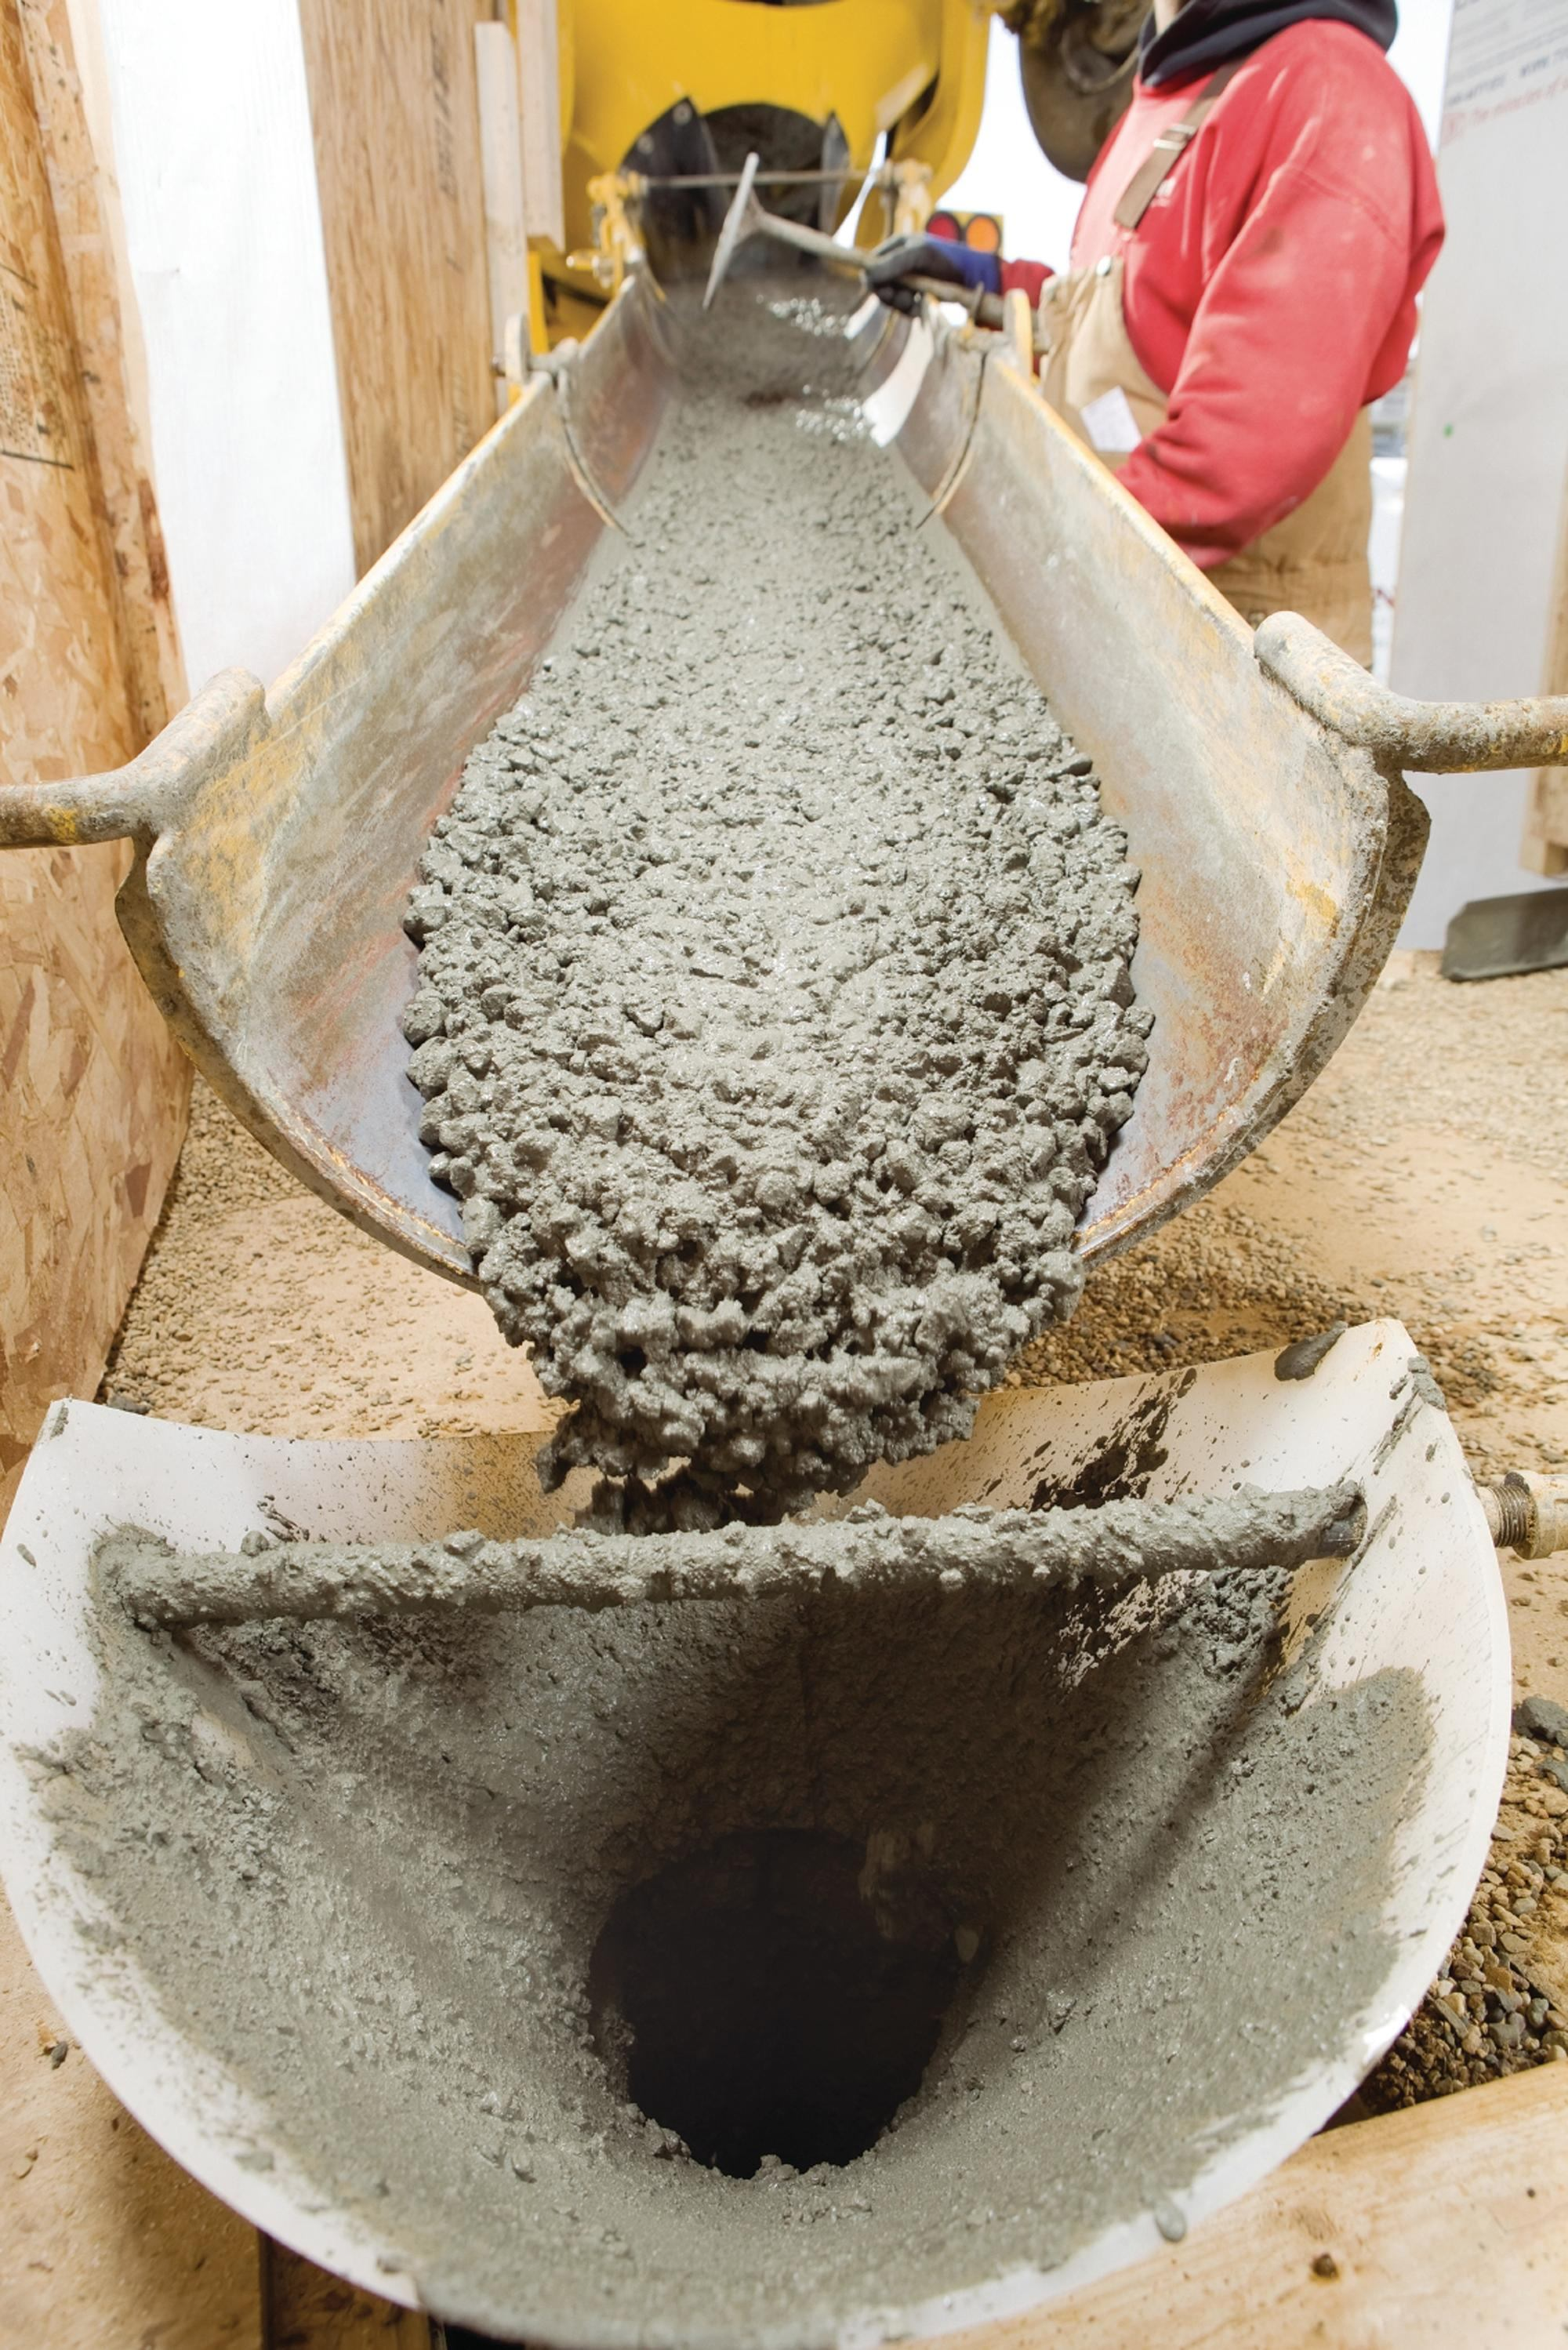 Concrete Mix For Laying Patio Slabs: Changes In Concrete Mix Design